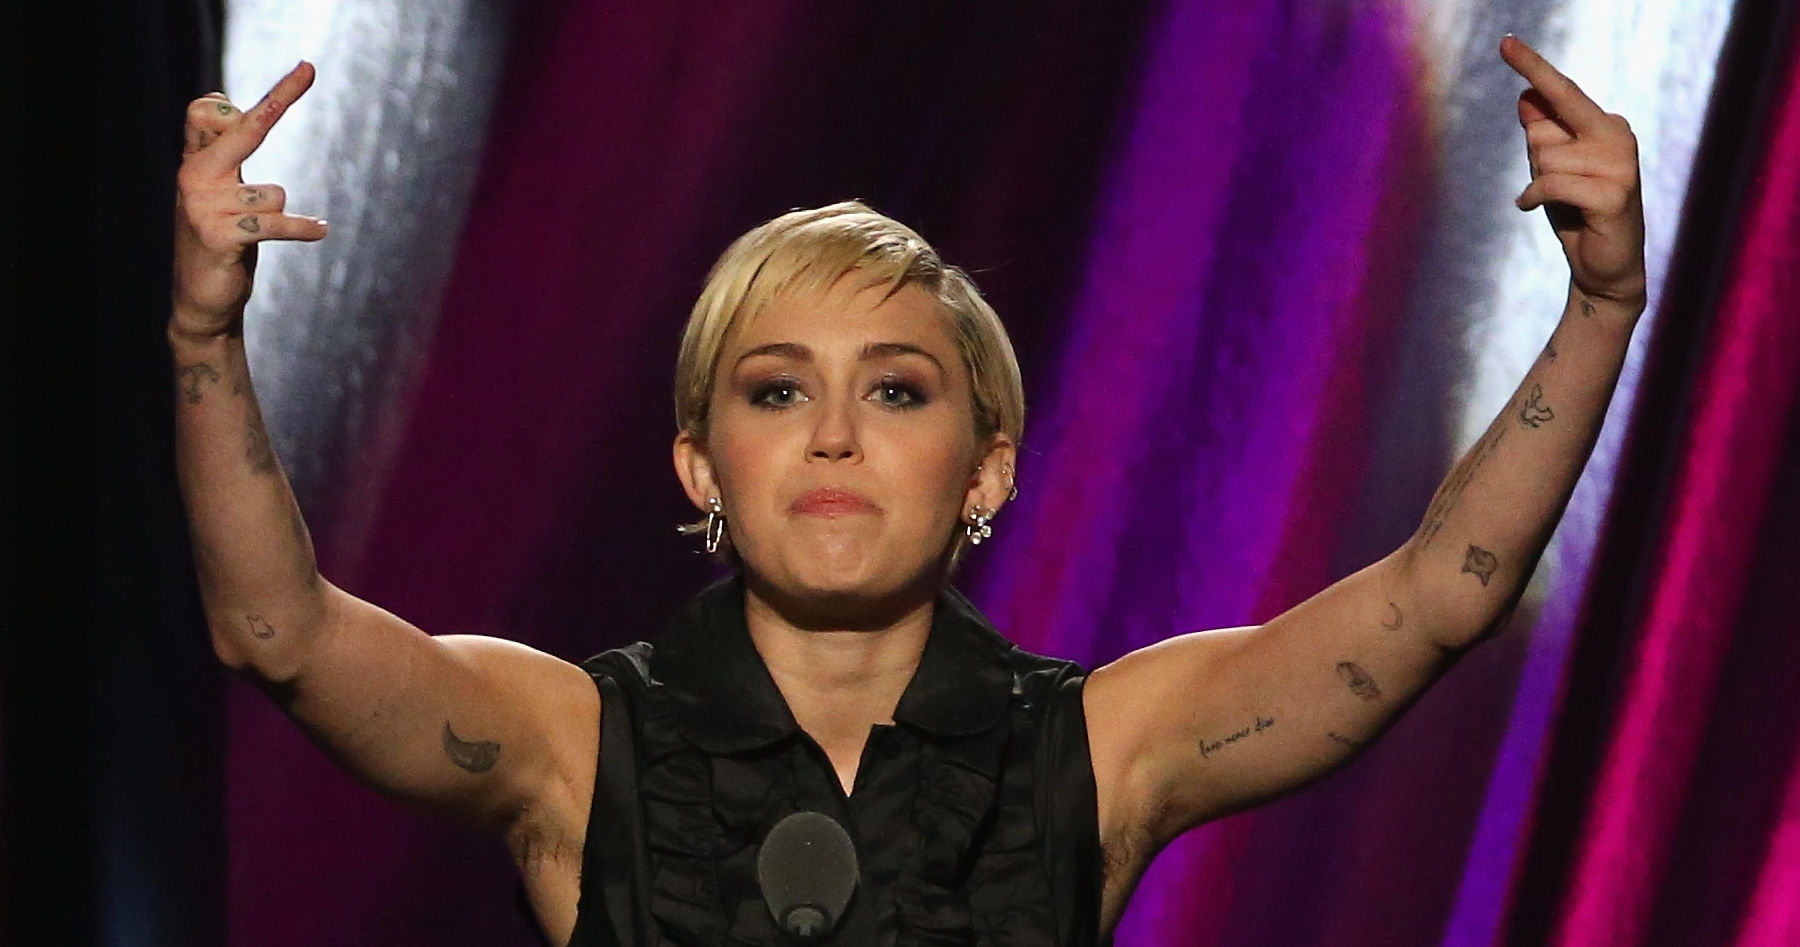 What Do You Think Of Miley's Unshaved Armpits? | Playbuzz